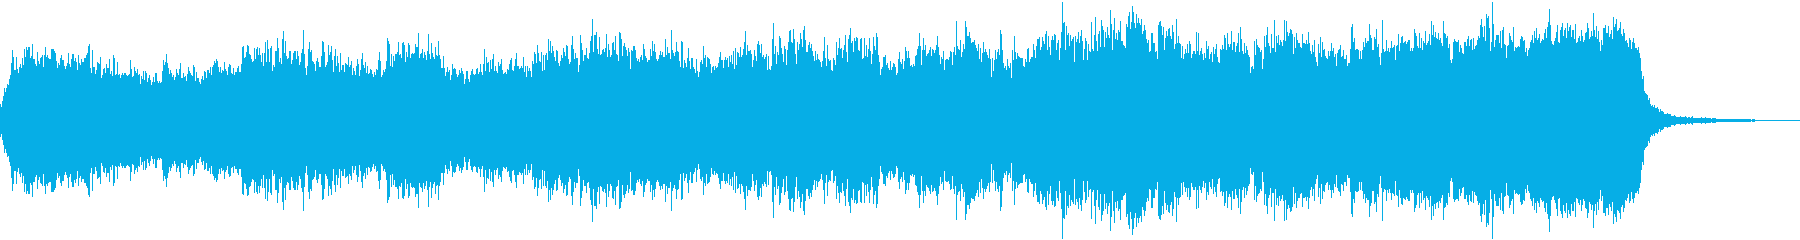 Mysterious, mysterious and fantastic dungeon BGM's reproduced waveform